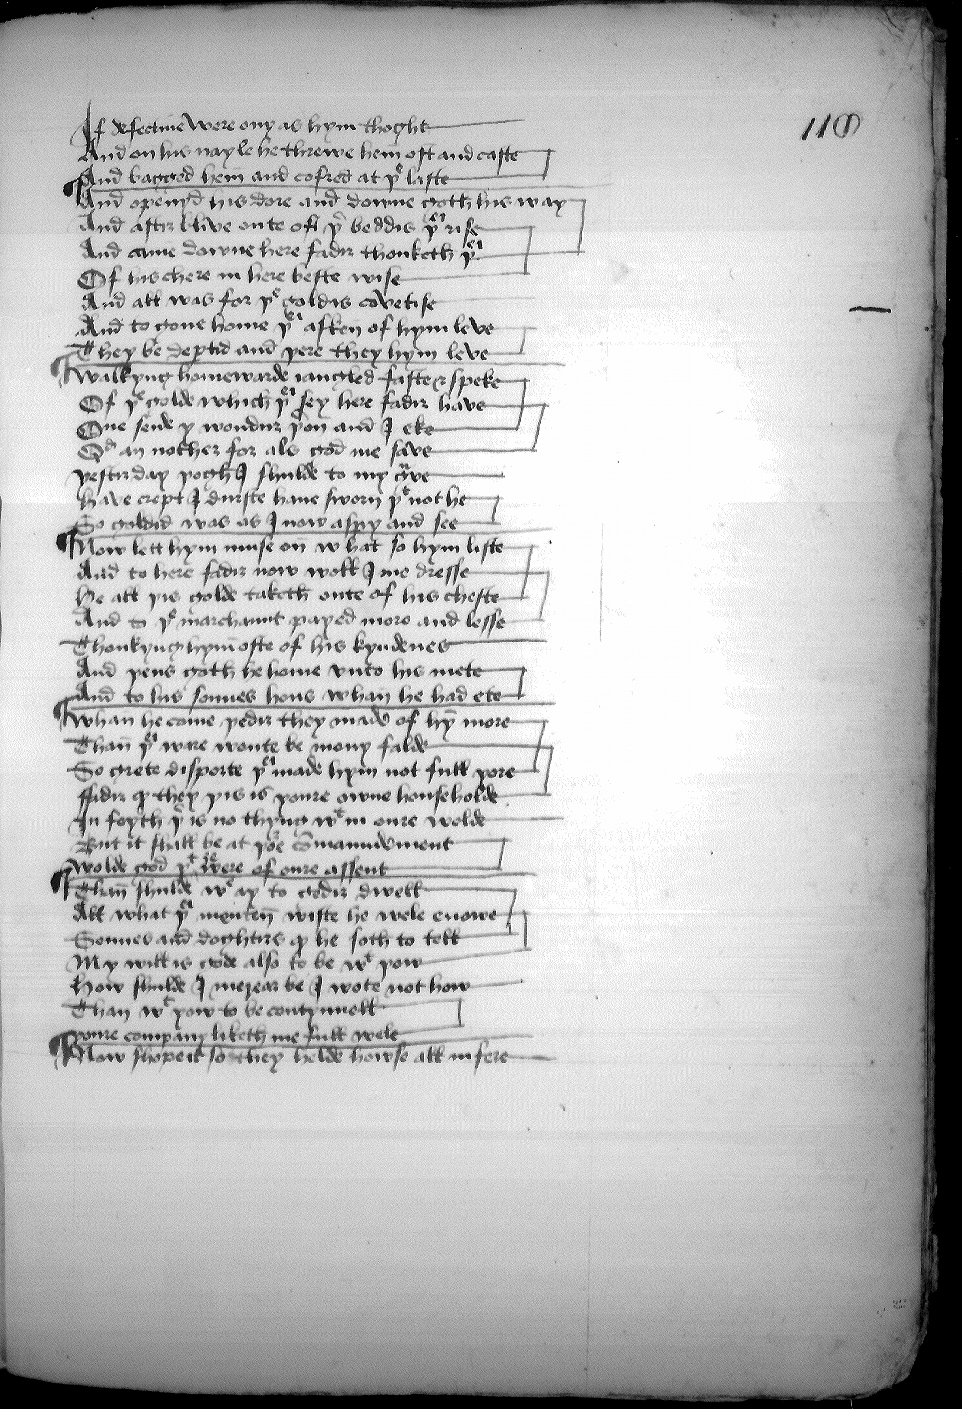 lines 4264-4277 in Bodleian Library MS Bodley 221